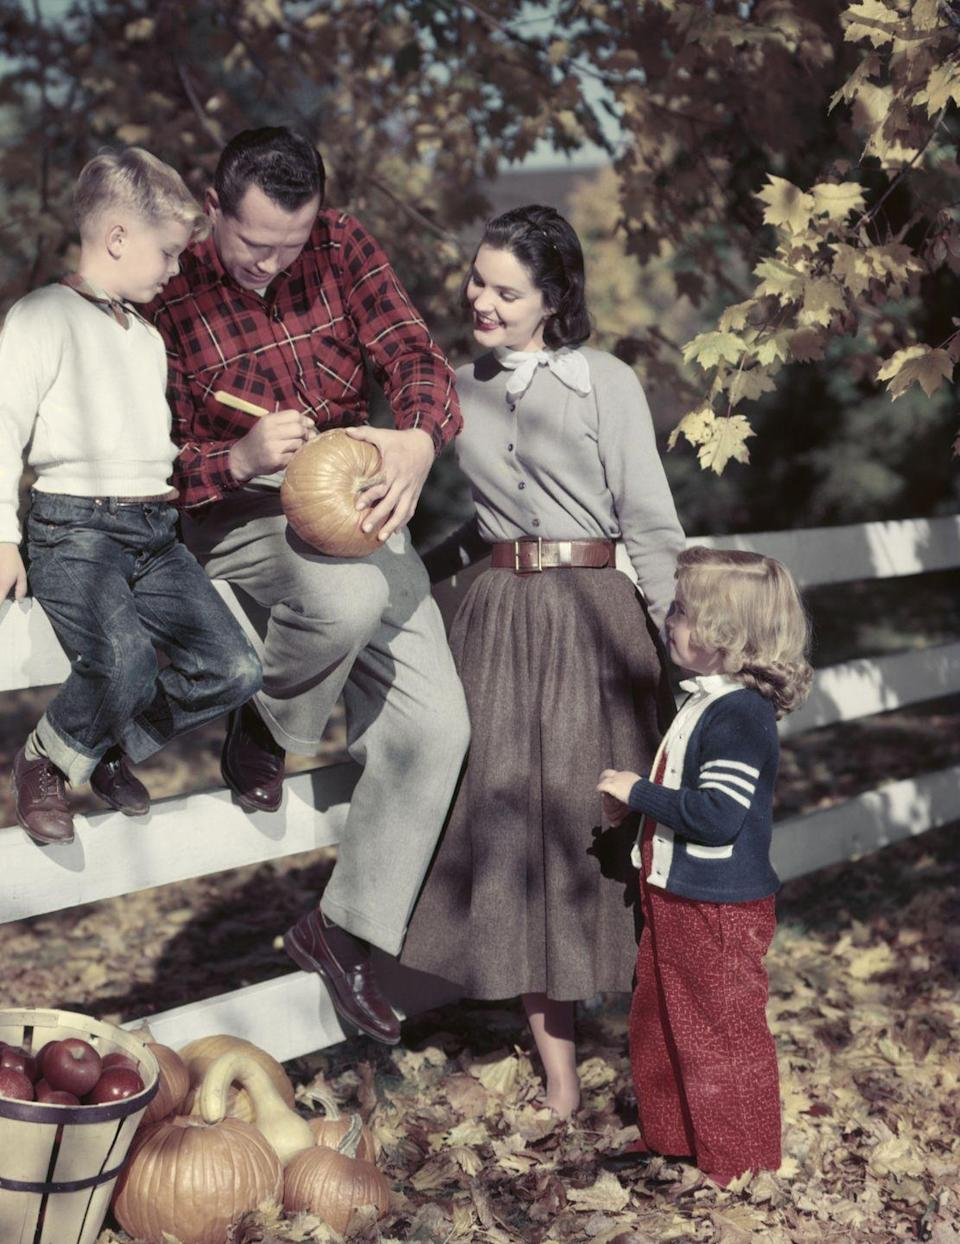 <p>Despite the vandalism that went hand in hand with Halloween night during the 1920s and '30s, by the 1950s, Halloween had transformed into a family-friendly holiday geared toward children. Thanks to the post-war baby boom, Halloween parties were moving away from town centers and into private homes and schools.</p>